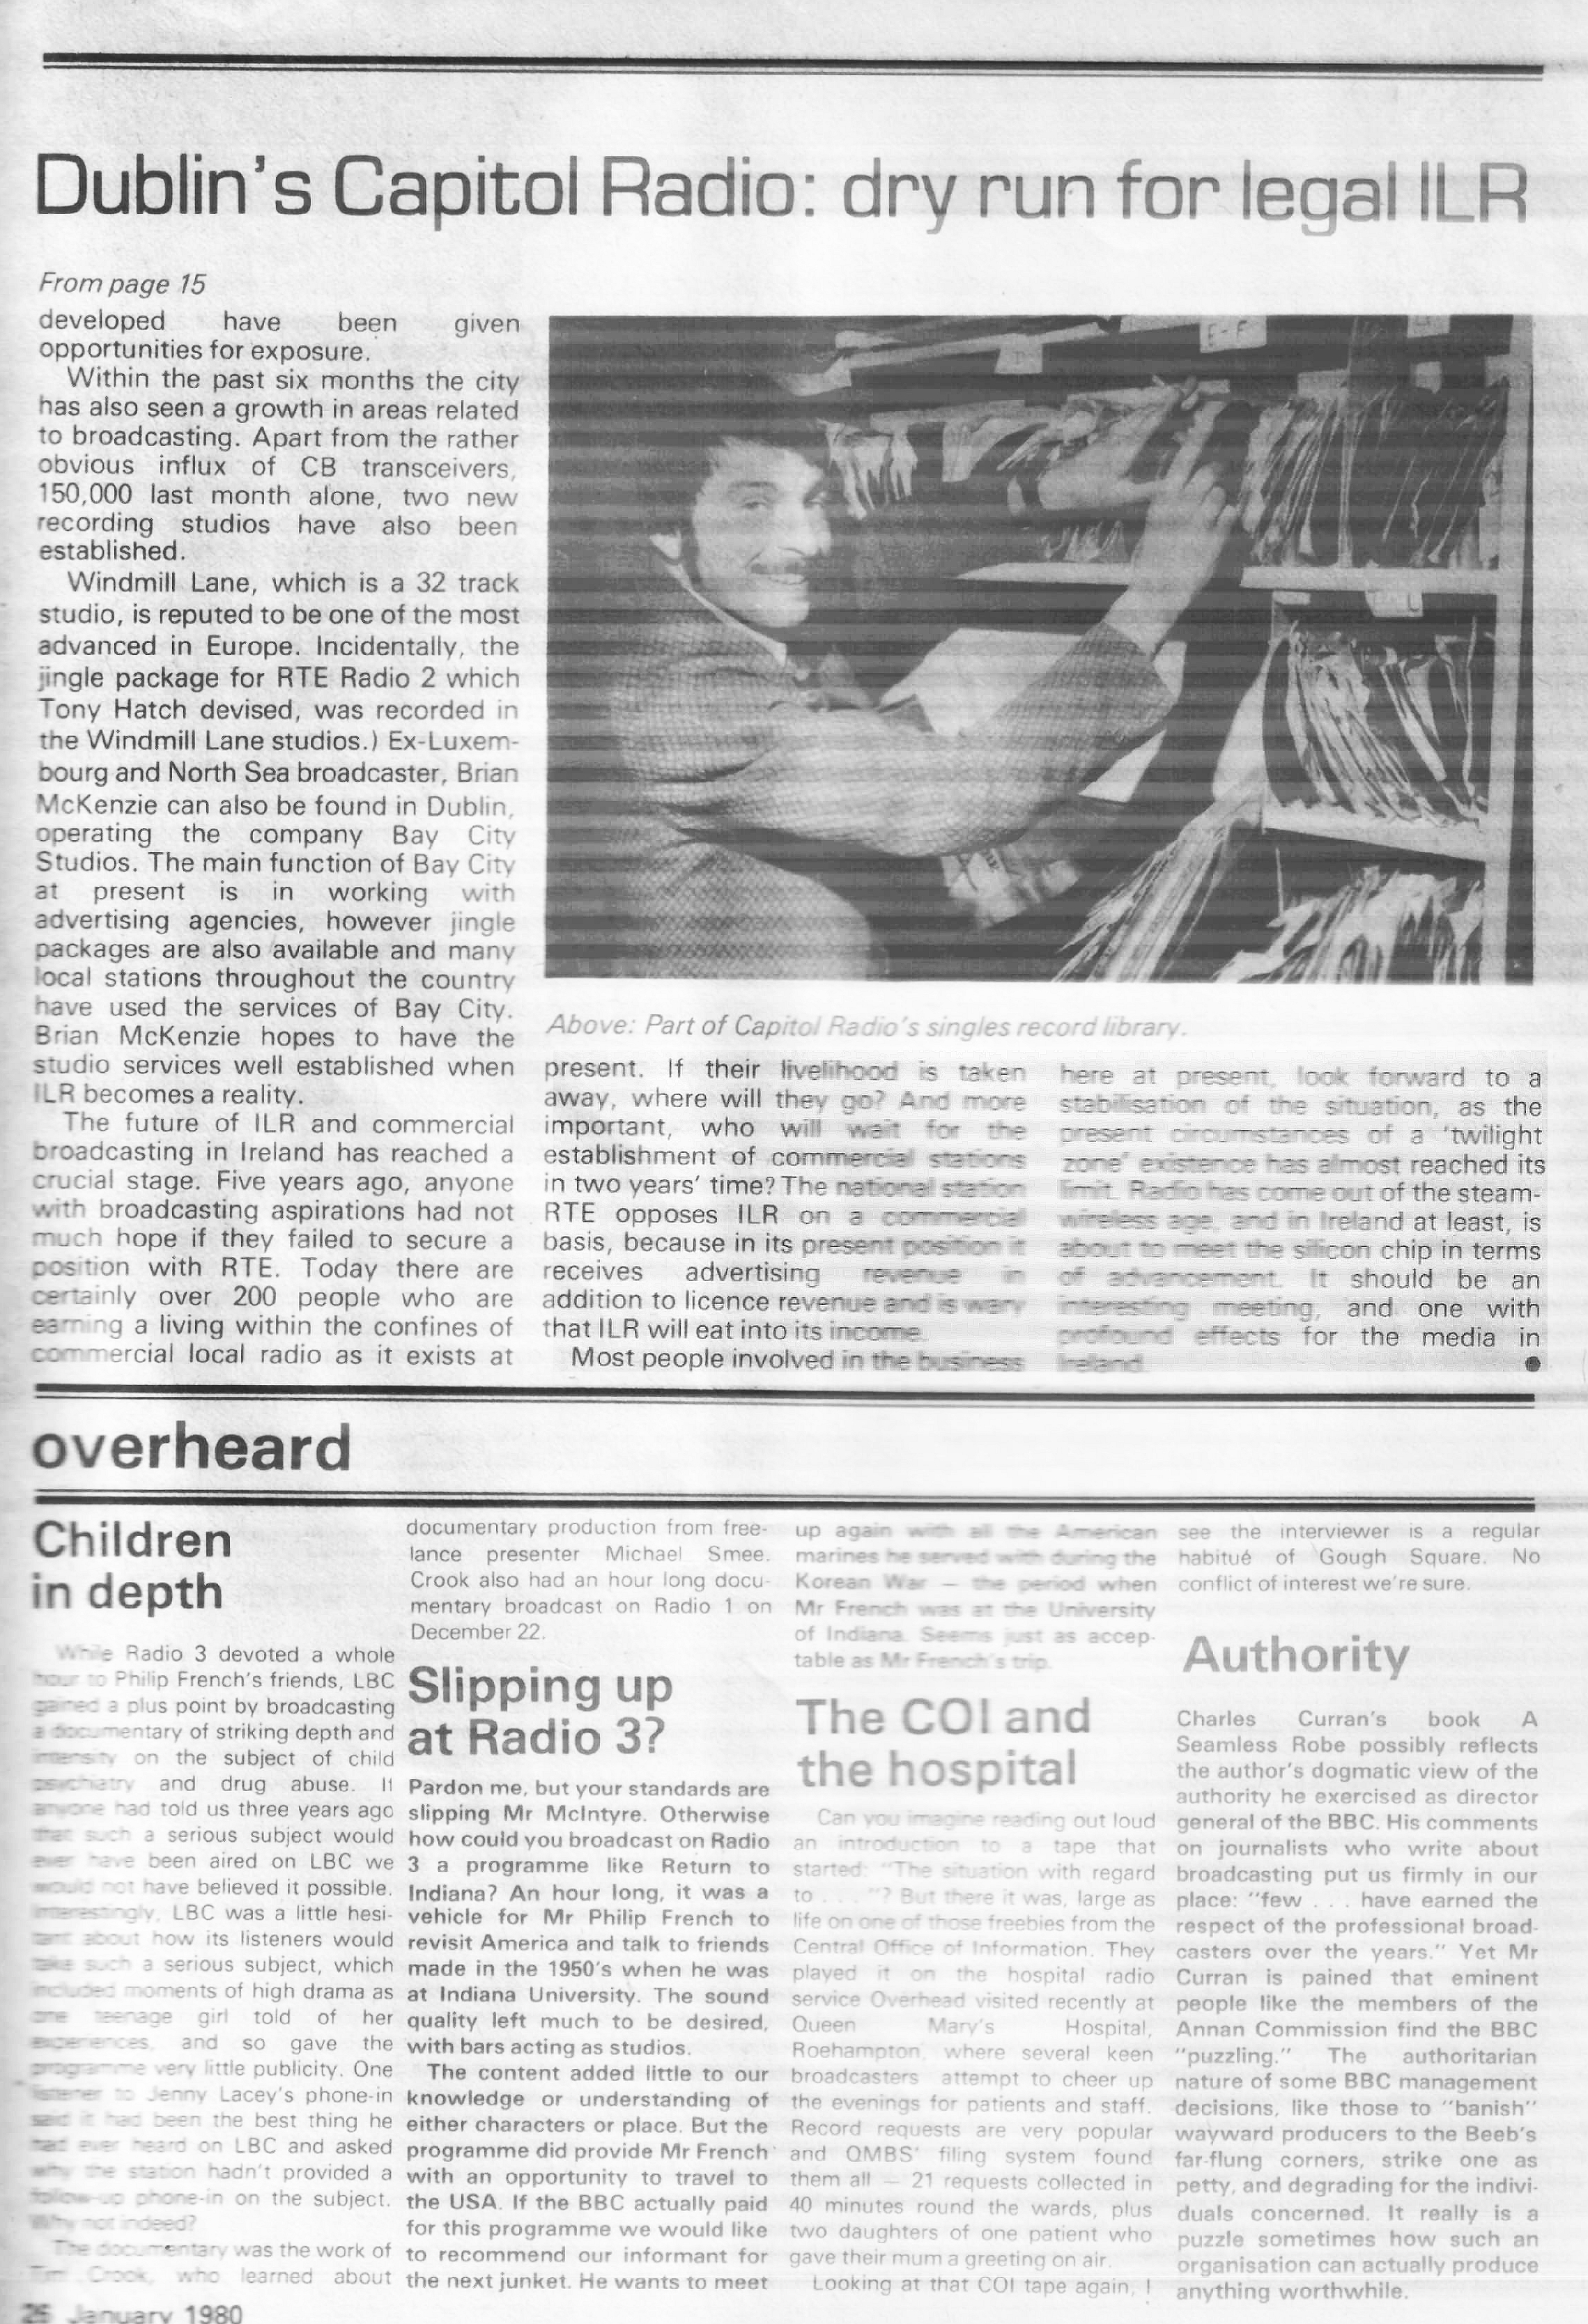 Capitol Radio feature in Radio World January 1980